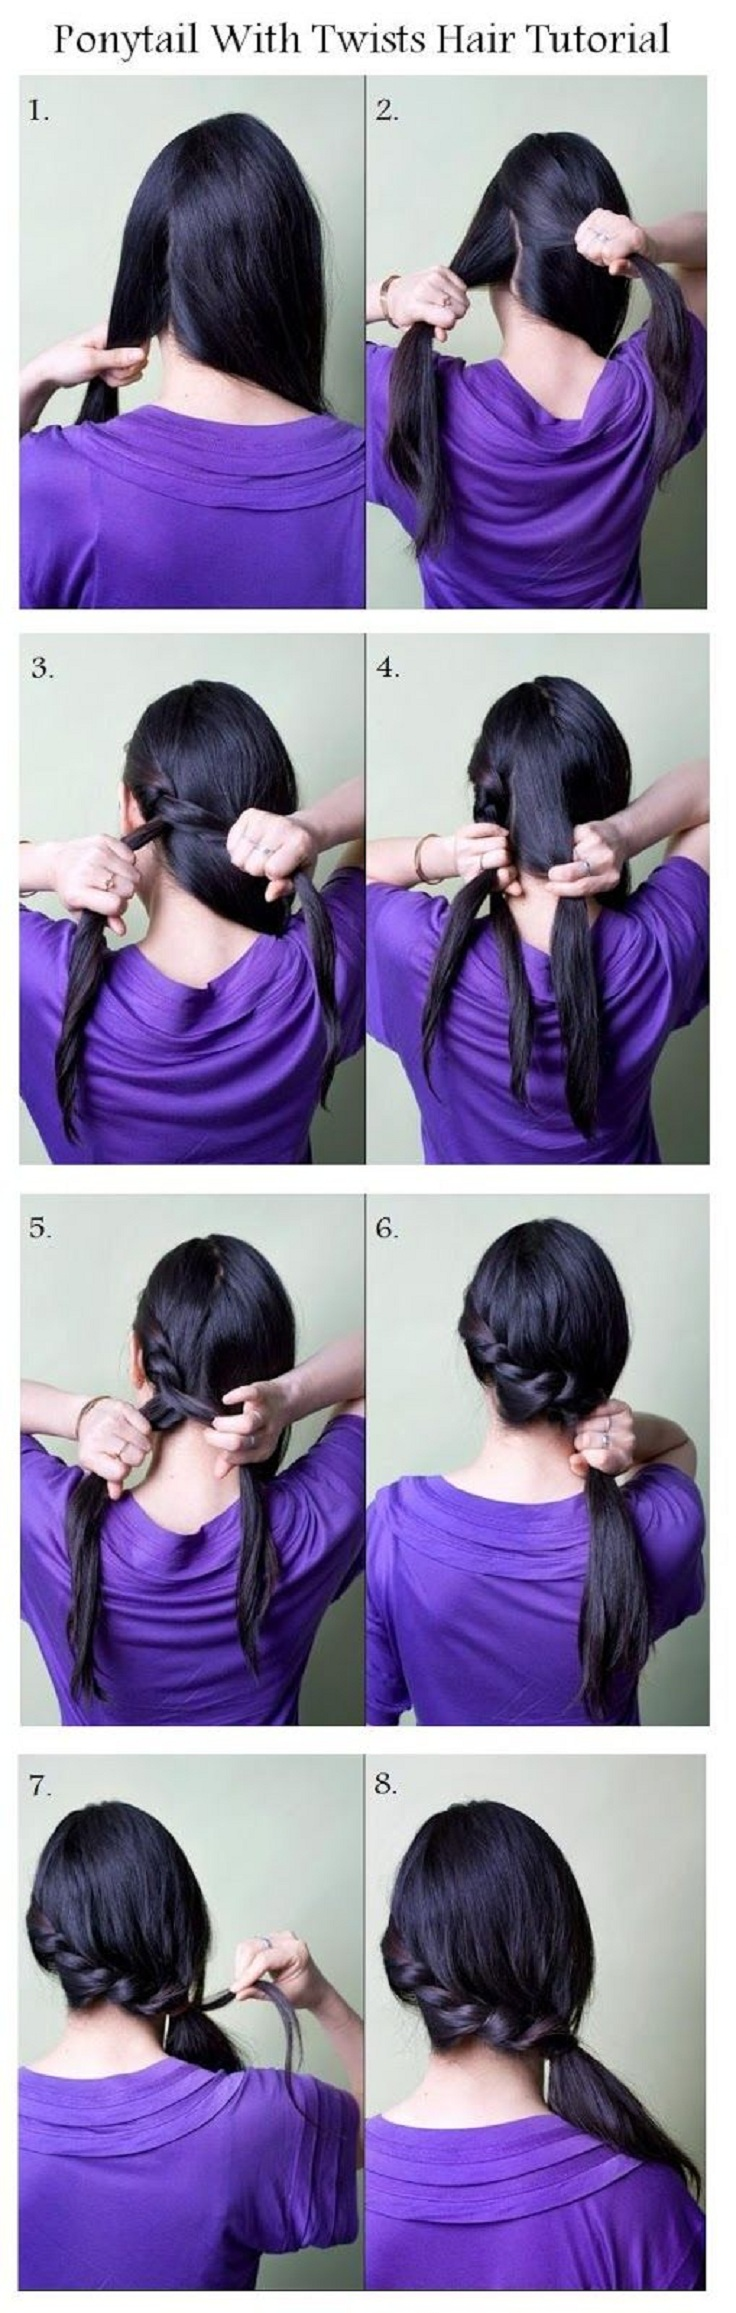 Make A Ponytail With Twists For Your Hair tutorial